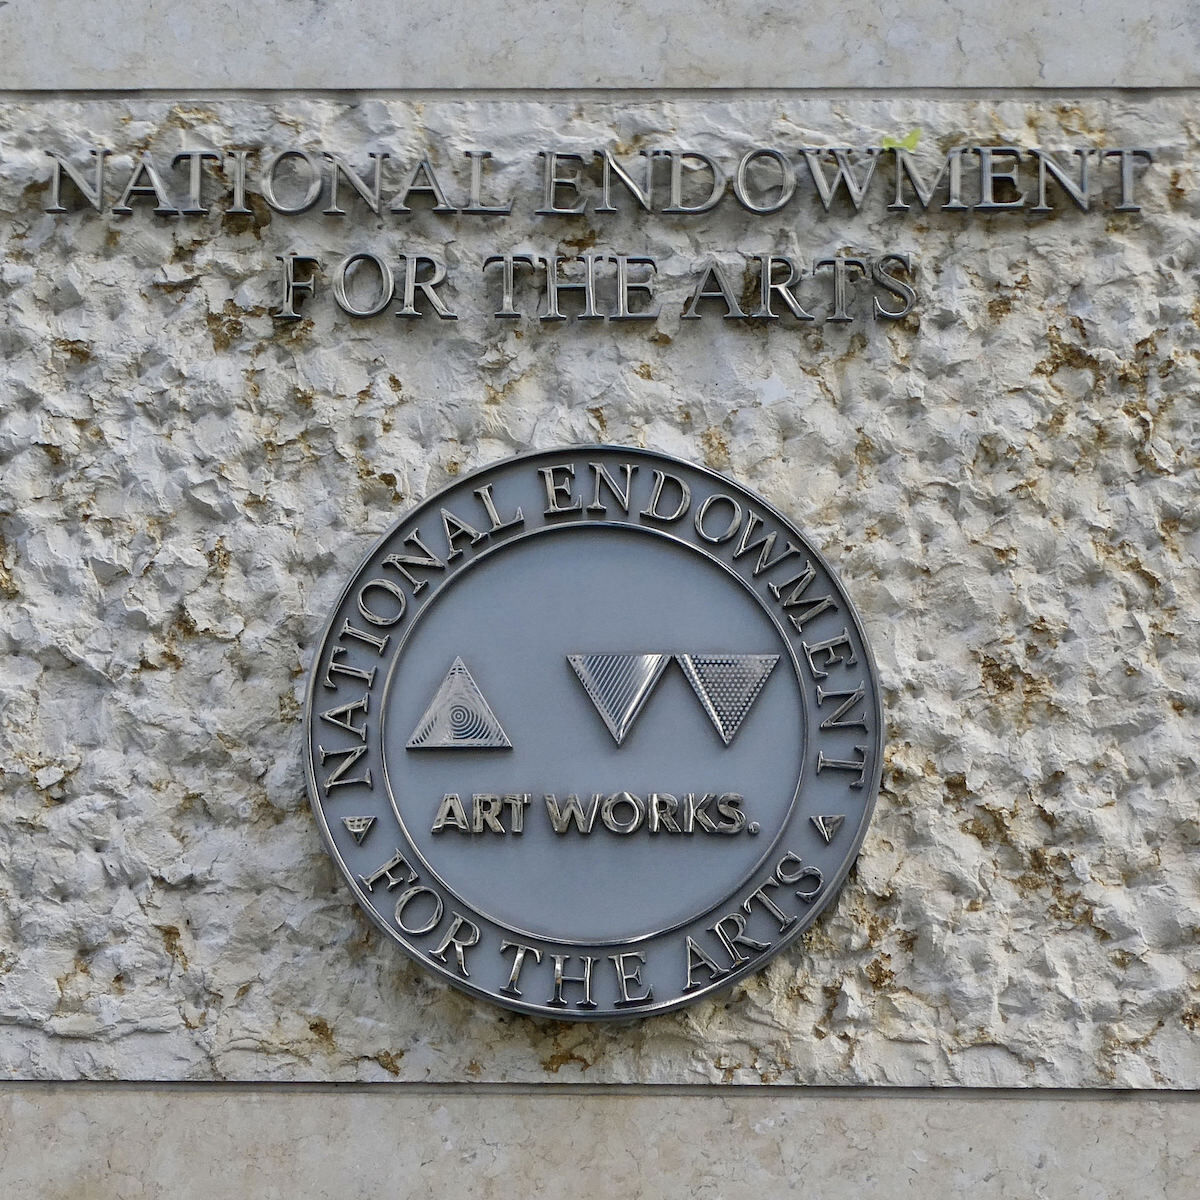 The National Endowment for the Arts. Photo by F Delventhal, via Flickr.